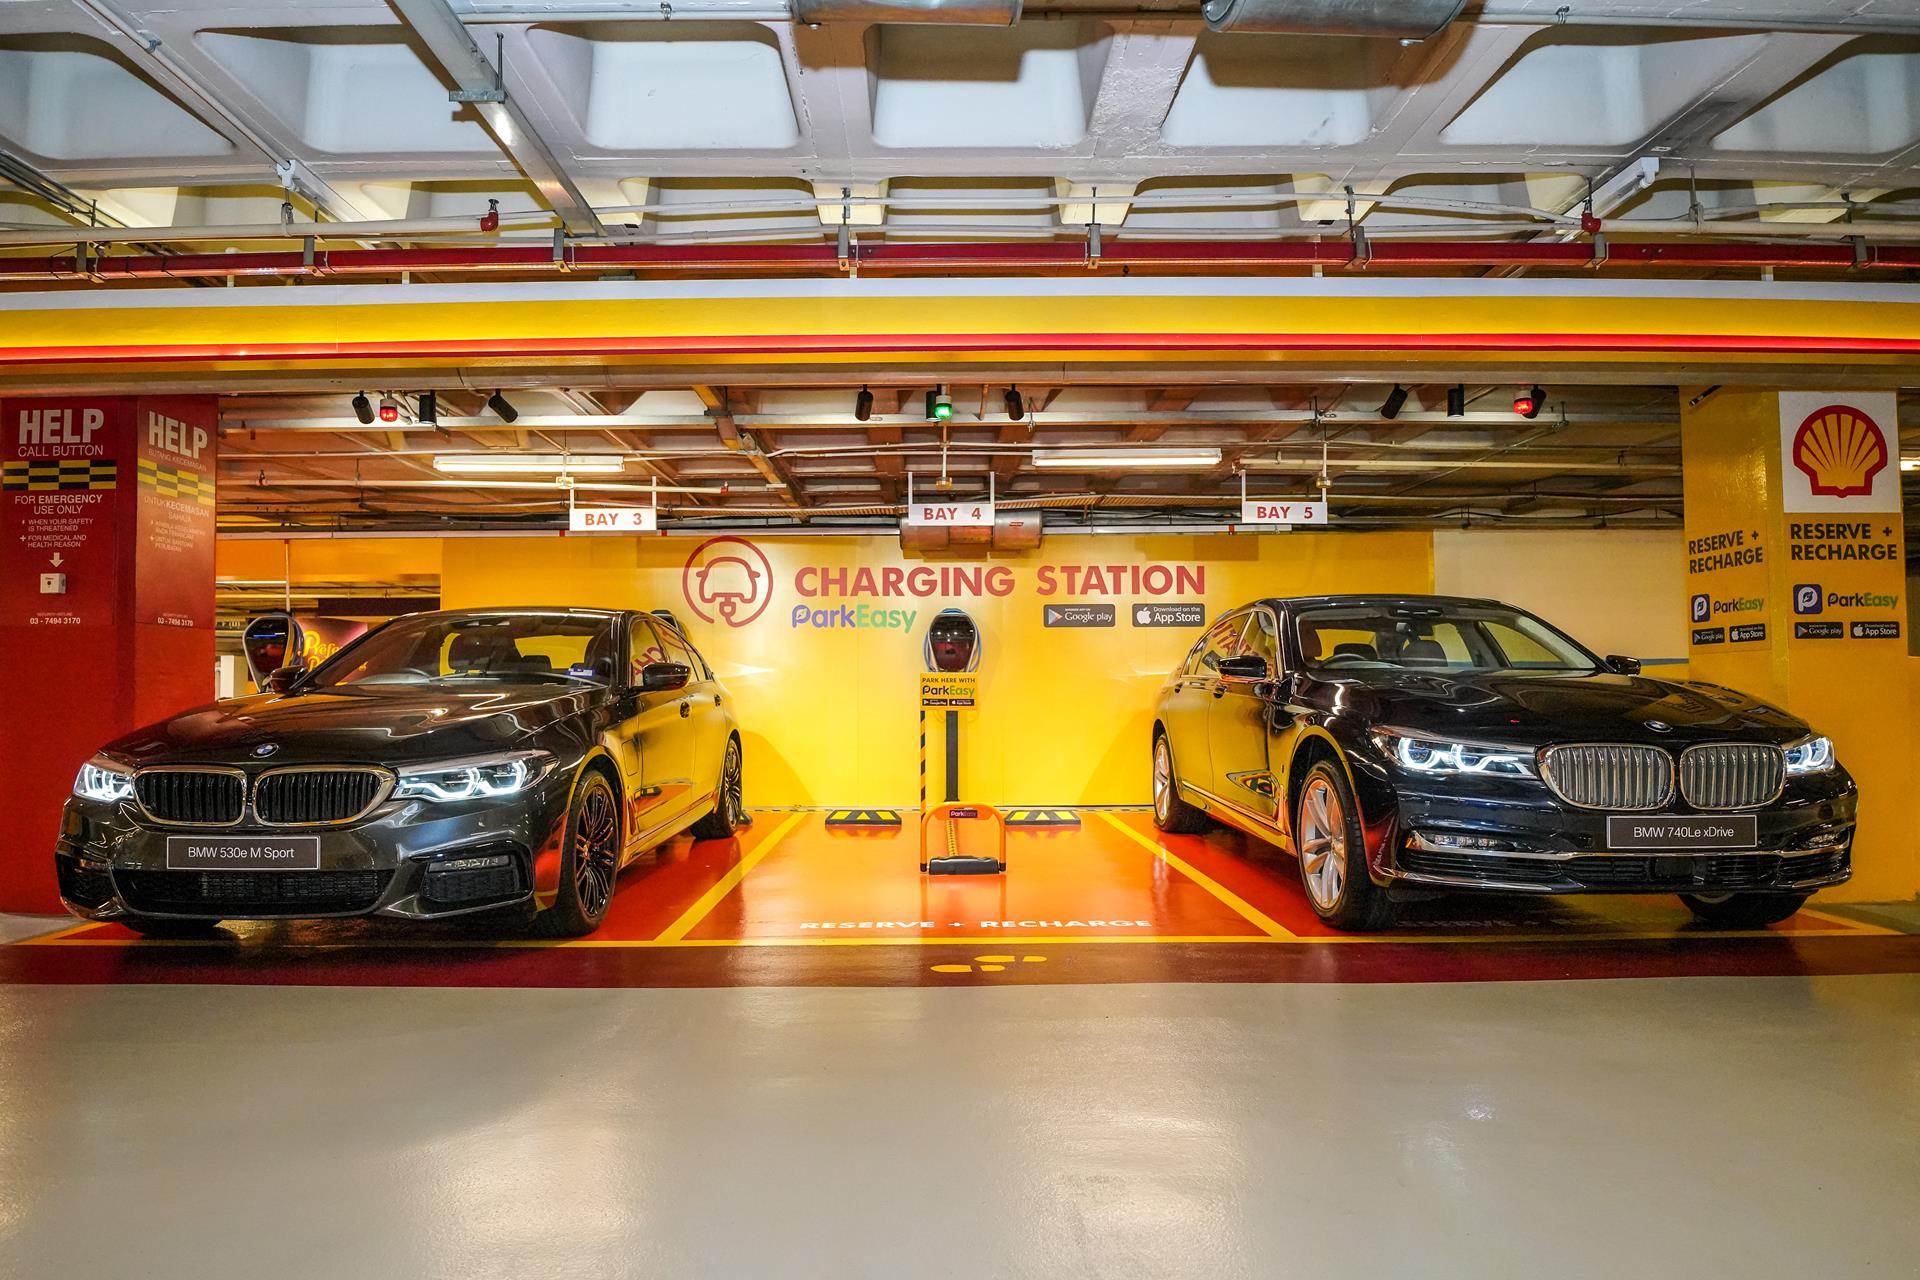 parkeasy bmw and shell team up to help you reserve parking bays in malls